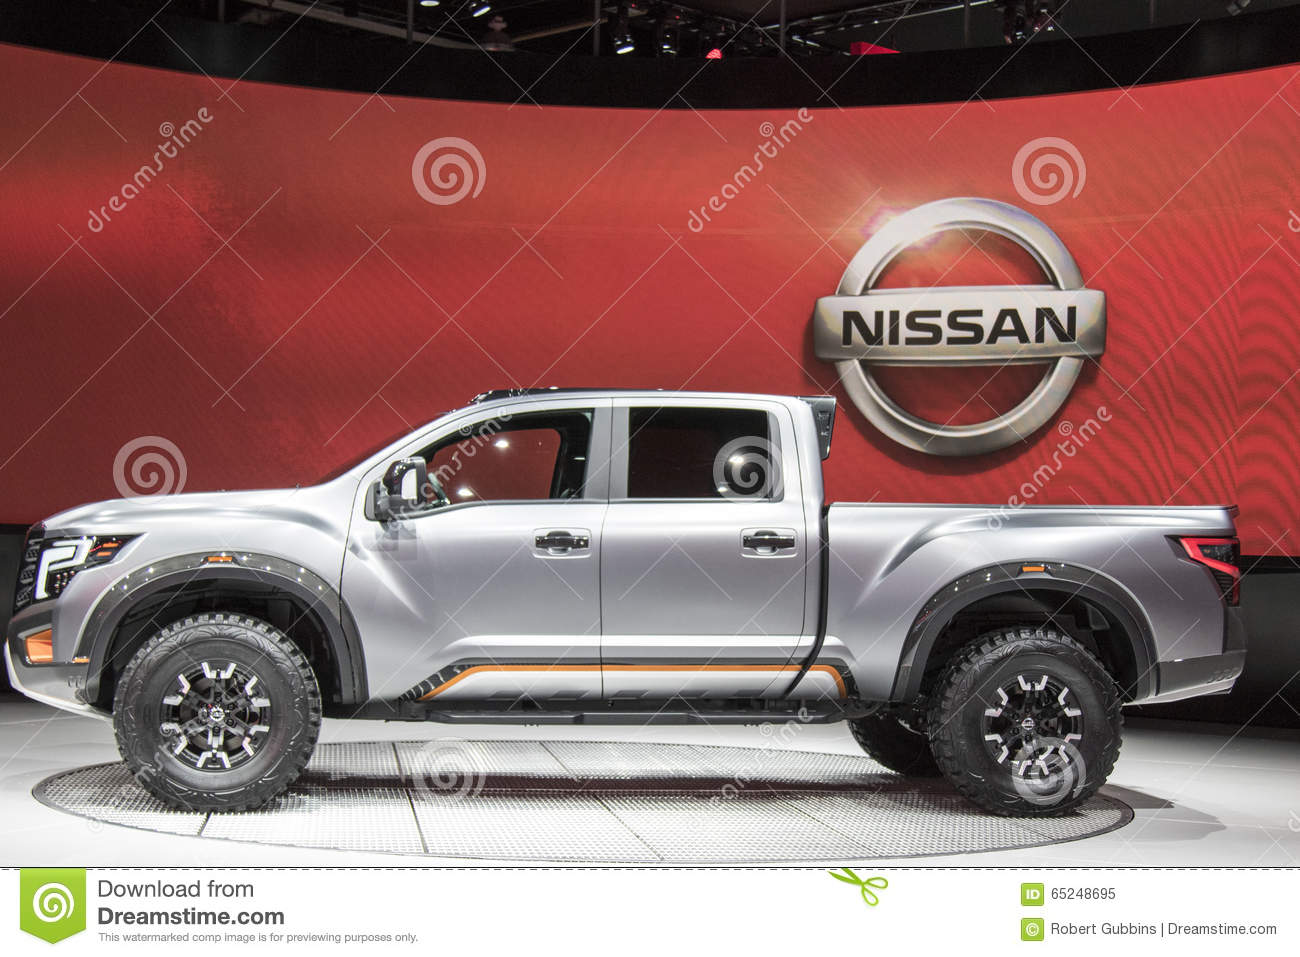 detroit january 17 the 2017 nissan titan pickup truck at the editorial image image 65248695. Black Bedroom Furniture Sets. Home Design Ideas